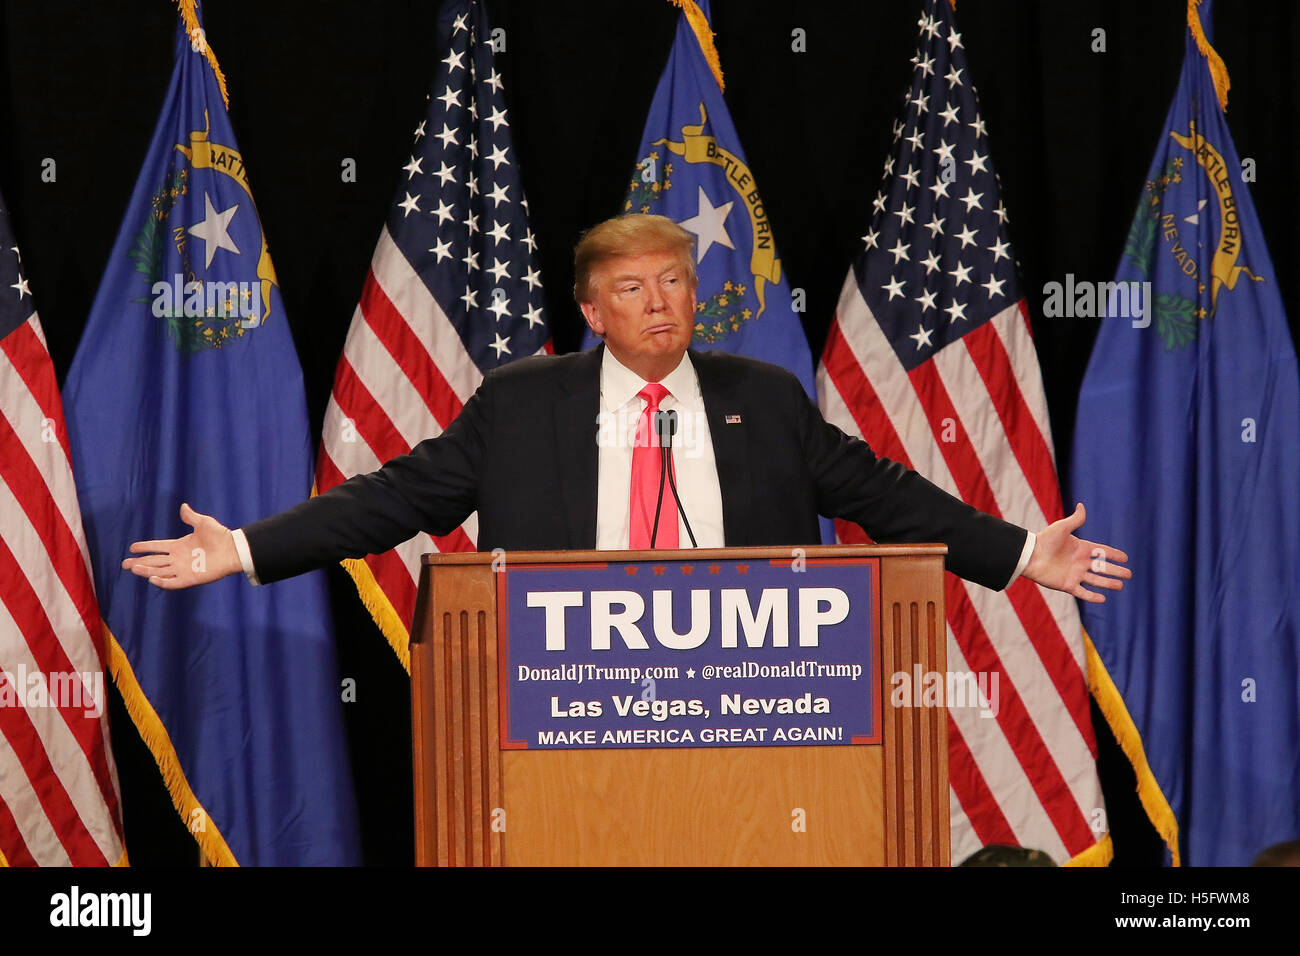 Trump anlässlich einer Kundgebung im South Point Resort and Casino am 21. Januar 2016 in Las Vegas Nevada. Stockbild